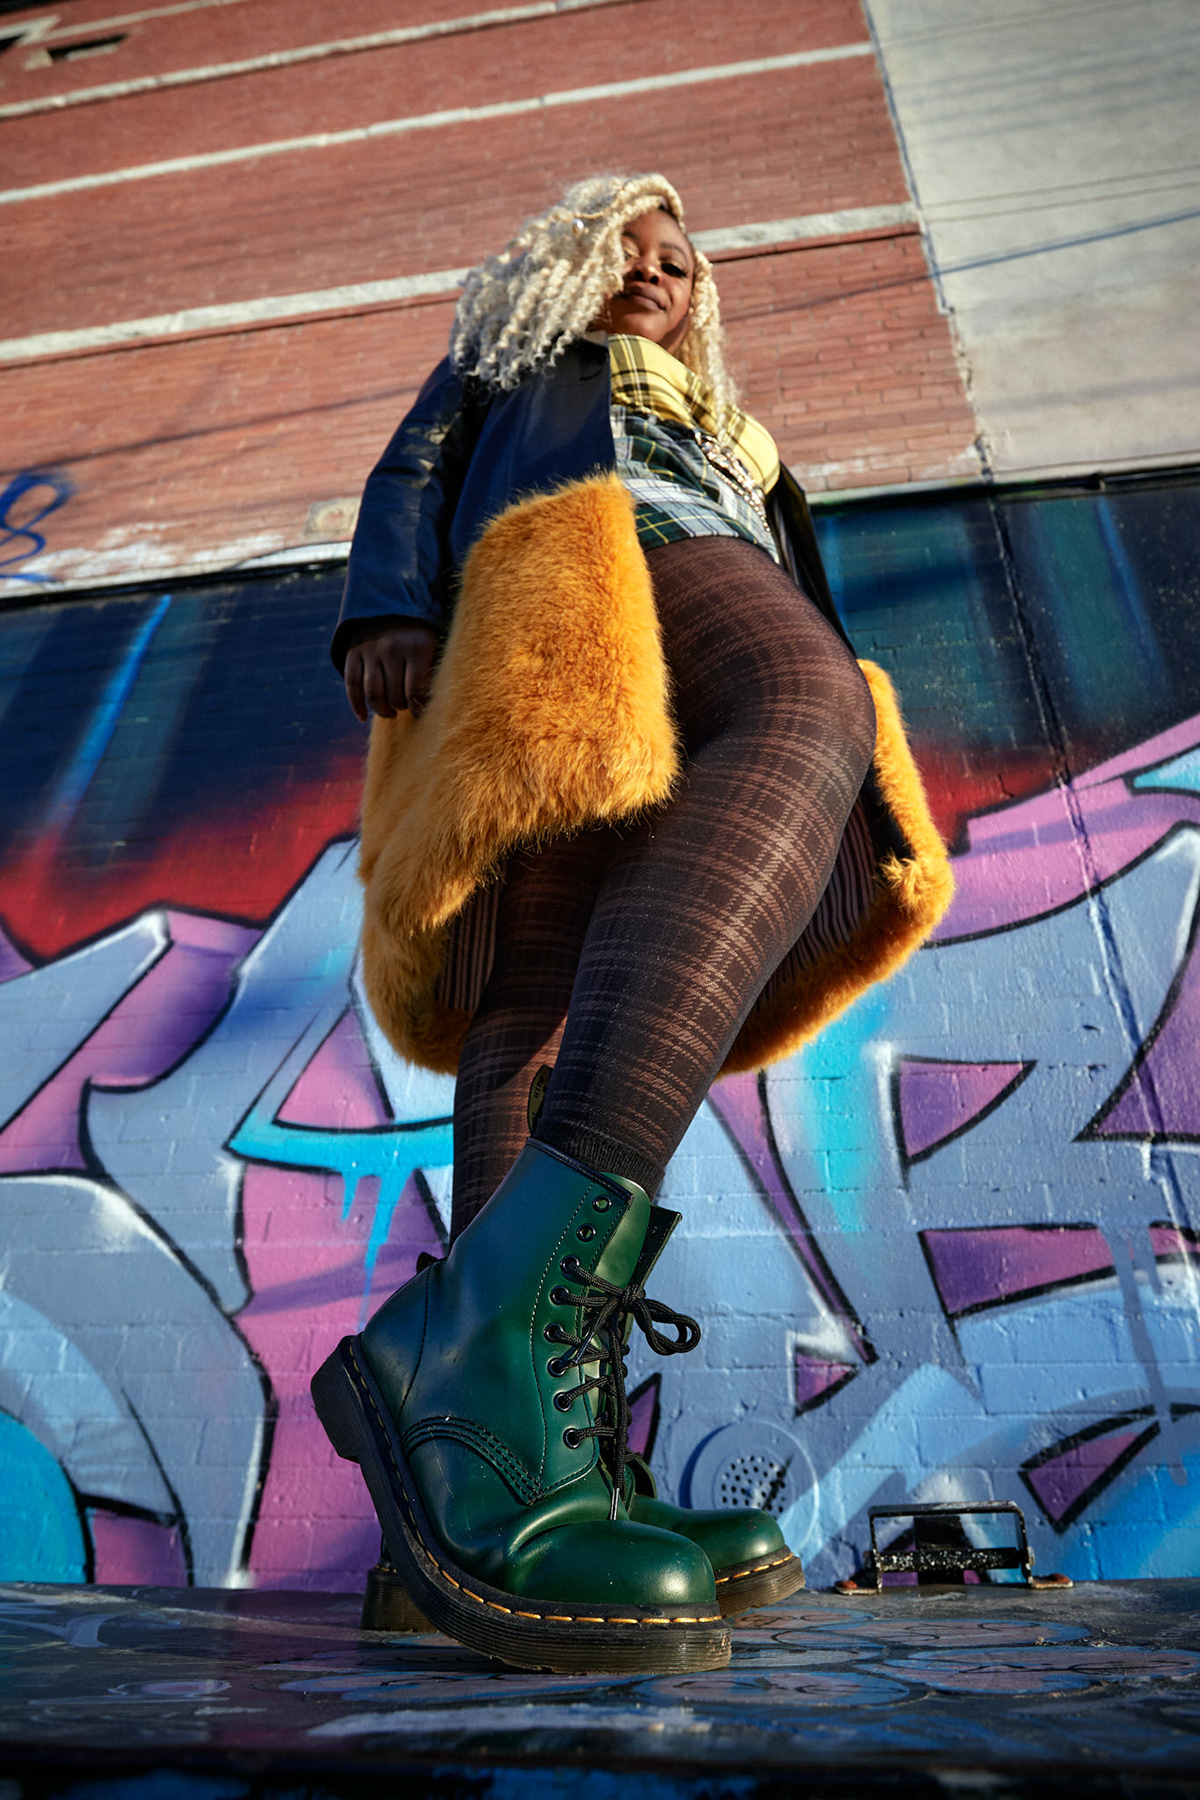 editorial,Fashion ,Photography ,Style,Brooklyn,Canon,dan lior,New York,shoes,35mm